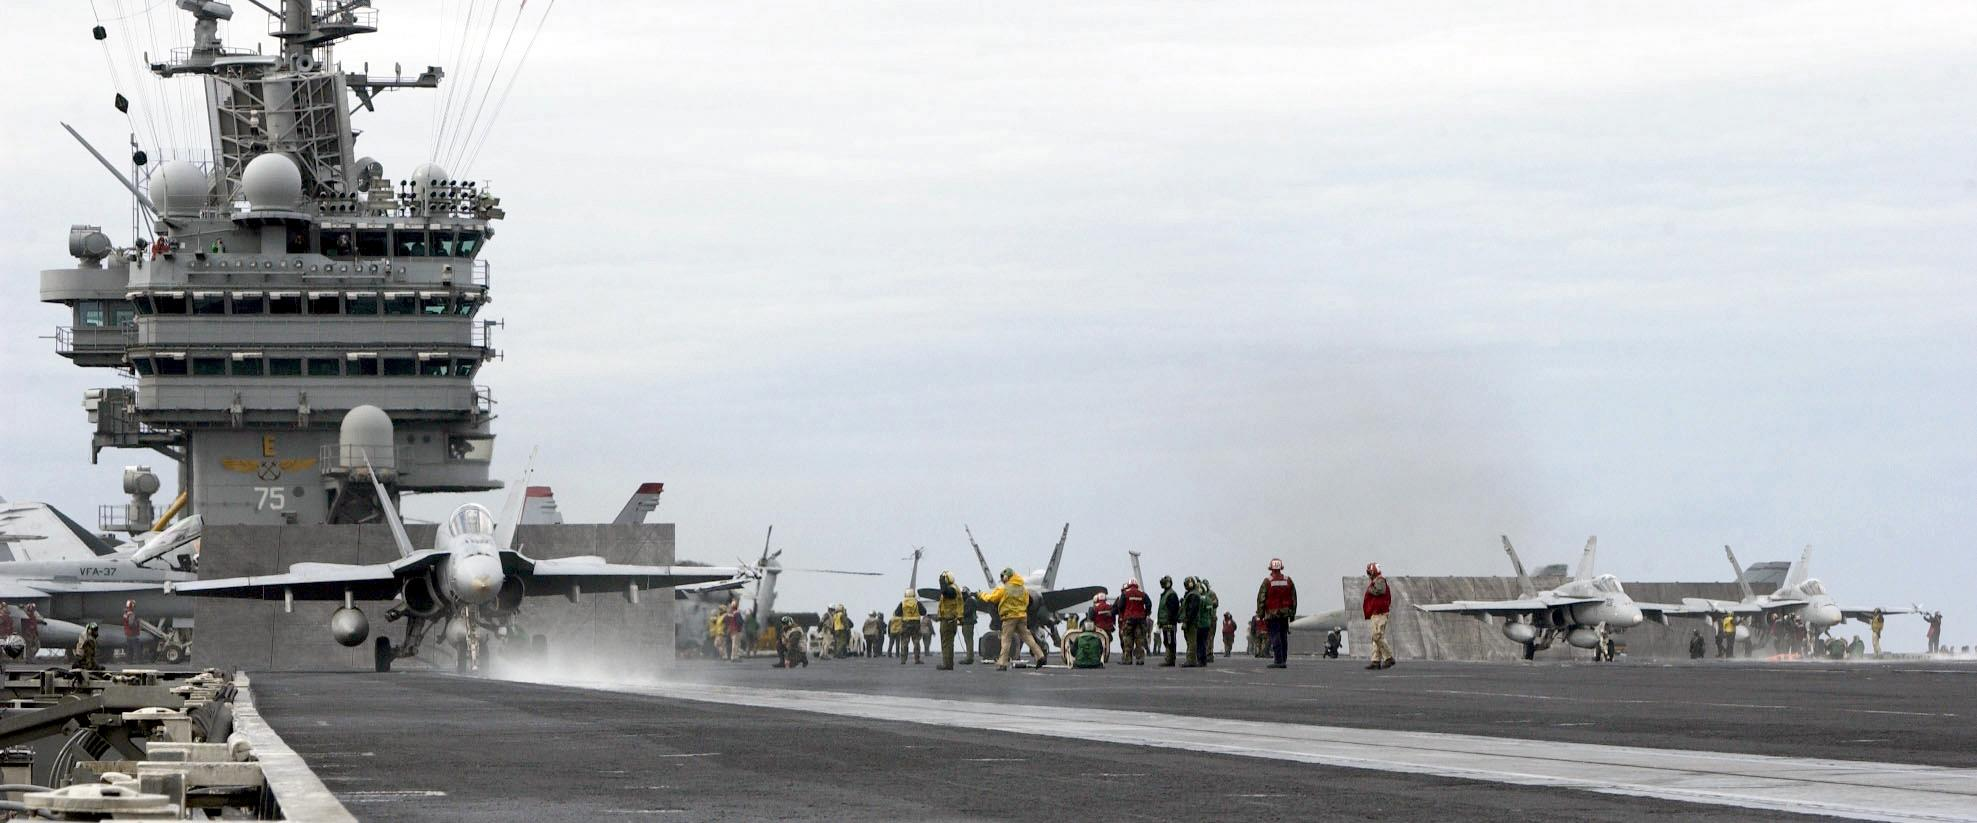 F/A-18 Hornet - F/A-18 Hornet getting ready for take-off from the USS Harry S Truman.  Other Hornets can be seen in the background.